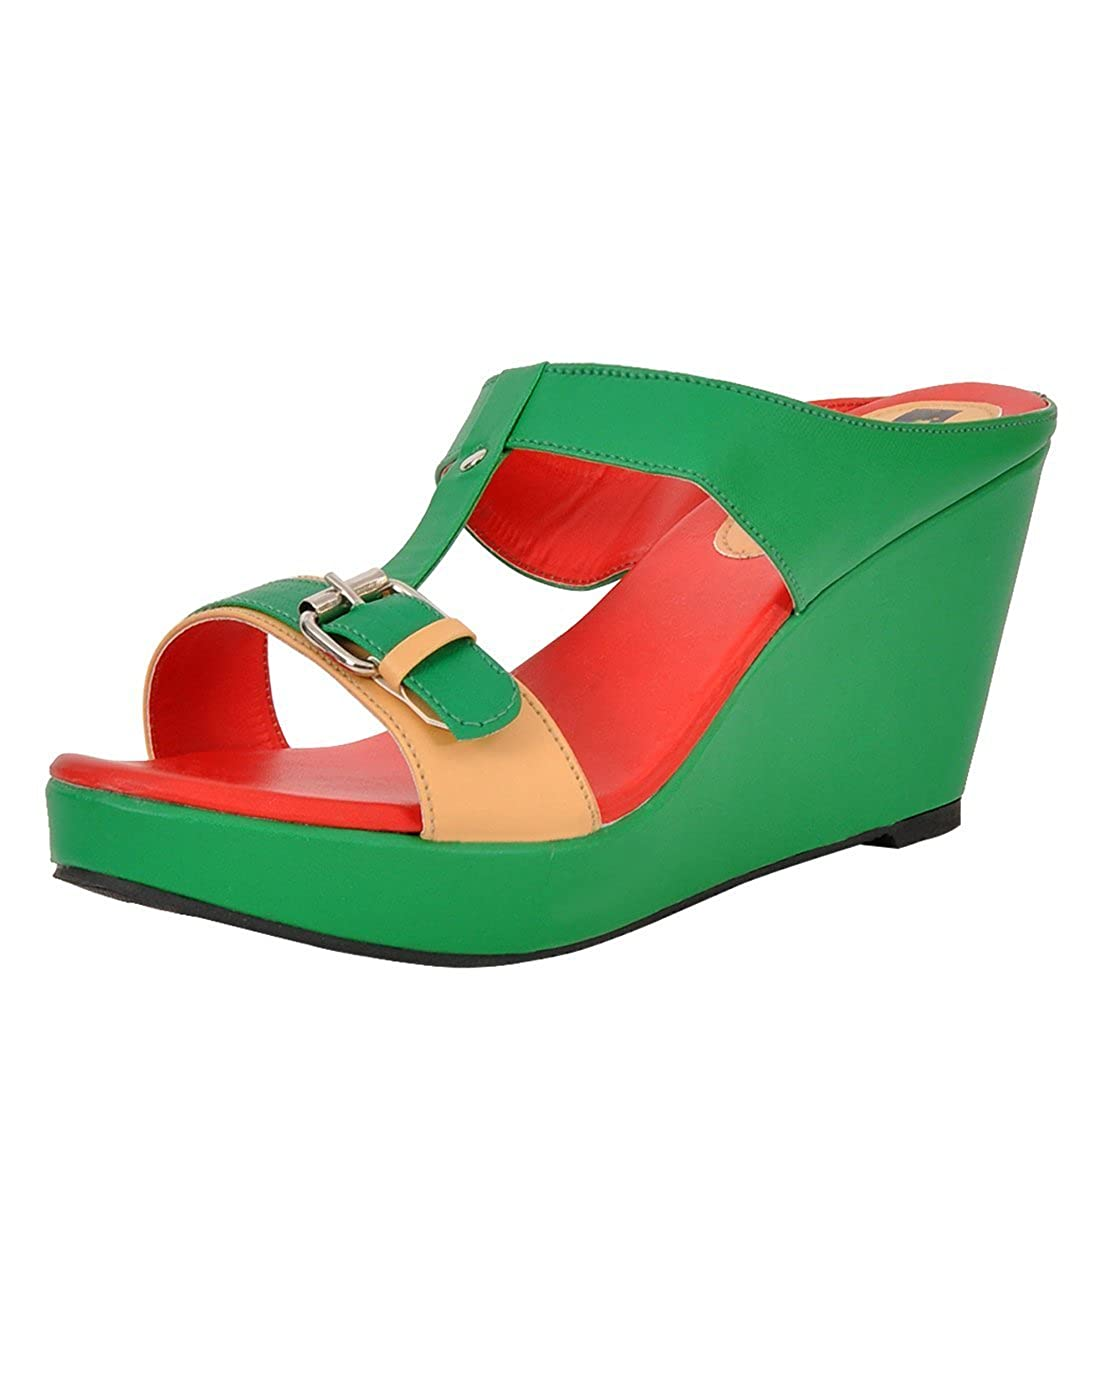 3ea4bf3a60337 Yepme Women's Green Wedges YPWFOOT8743_8 UK: Buy Online at Low Prices in  India - Amazon.in